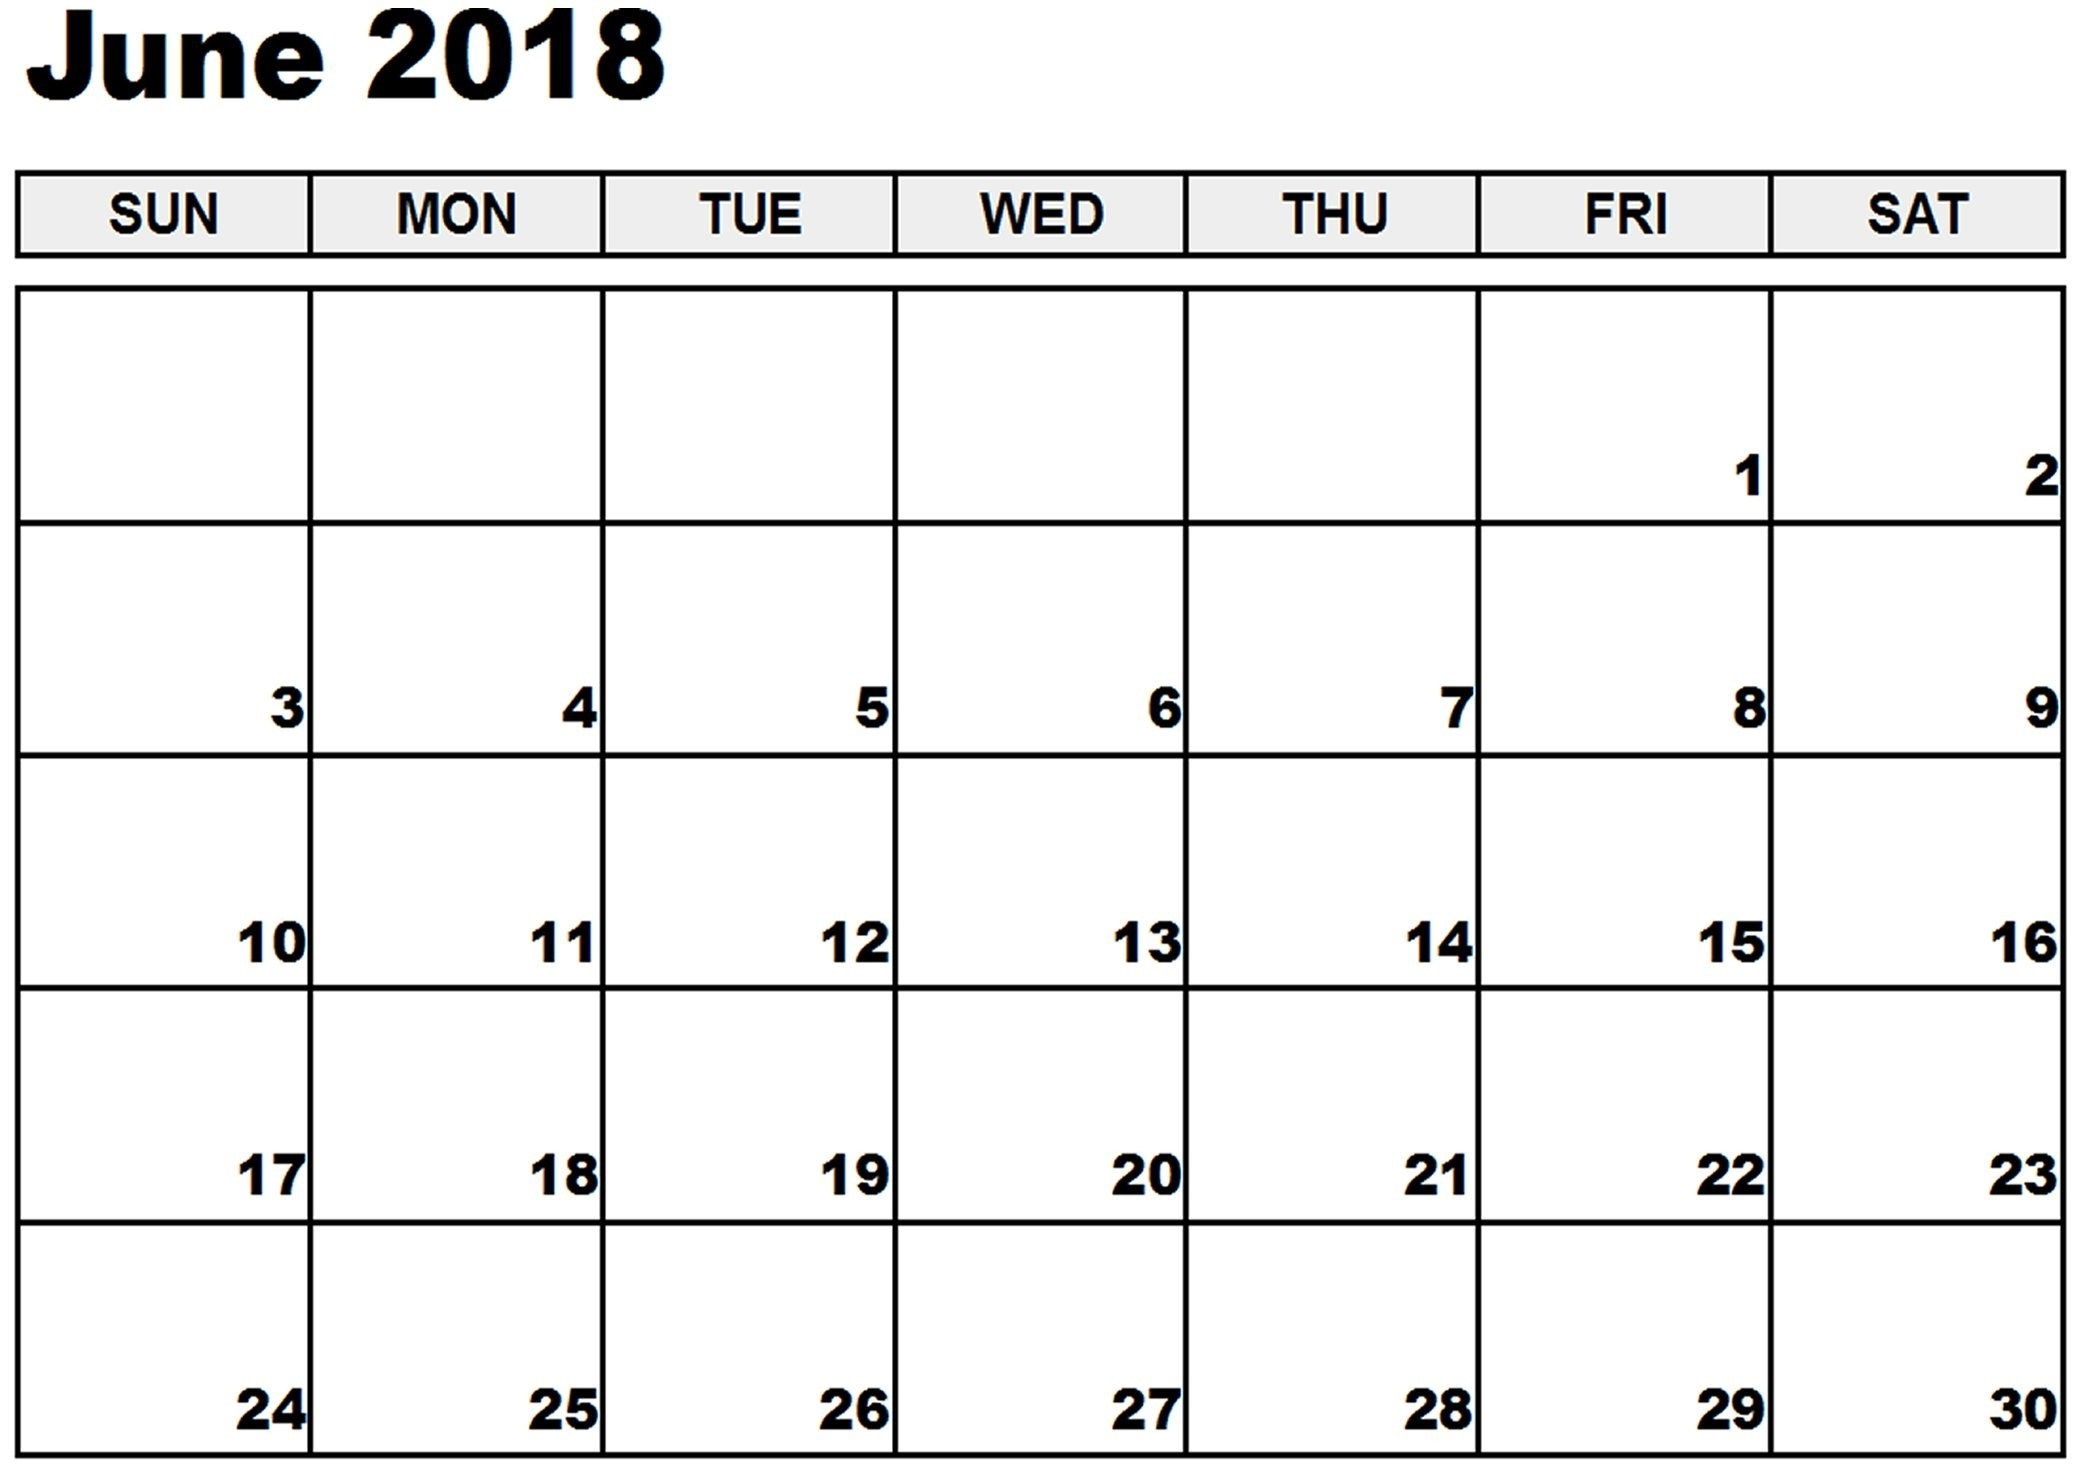 Blank Calendar 2018 June Printable Template, Blank Calendar For June 2018 - Expin.radiodigital.co with May And June 2018 Calendar Printable